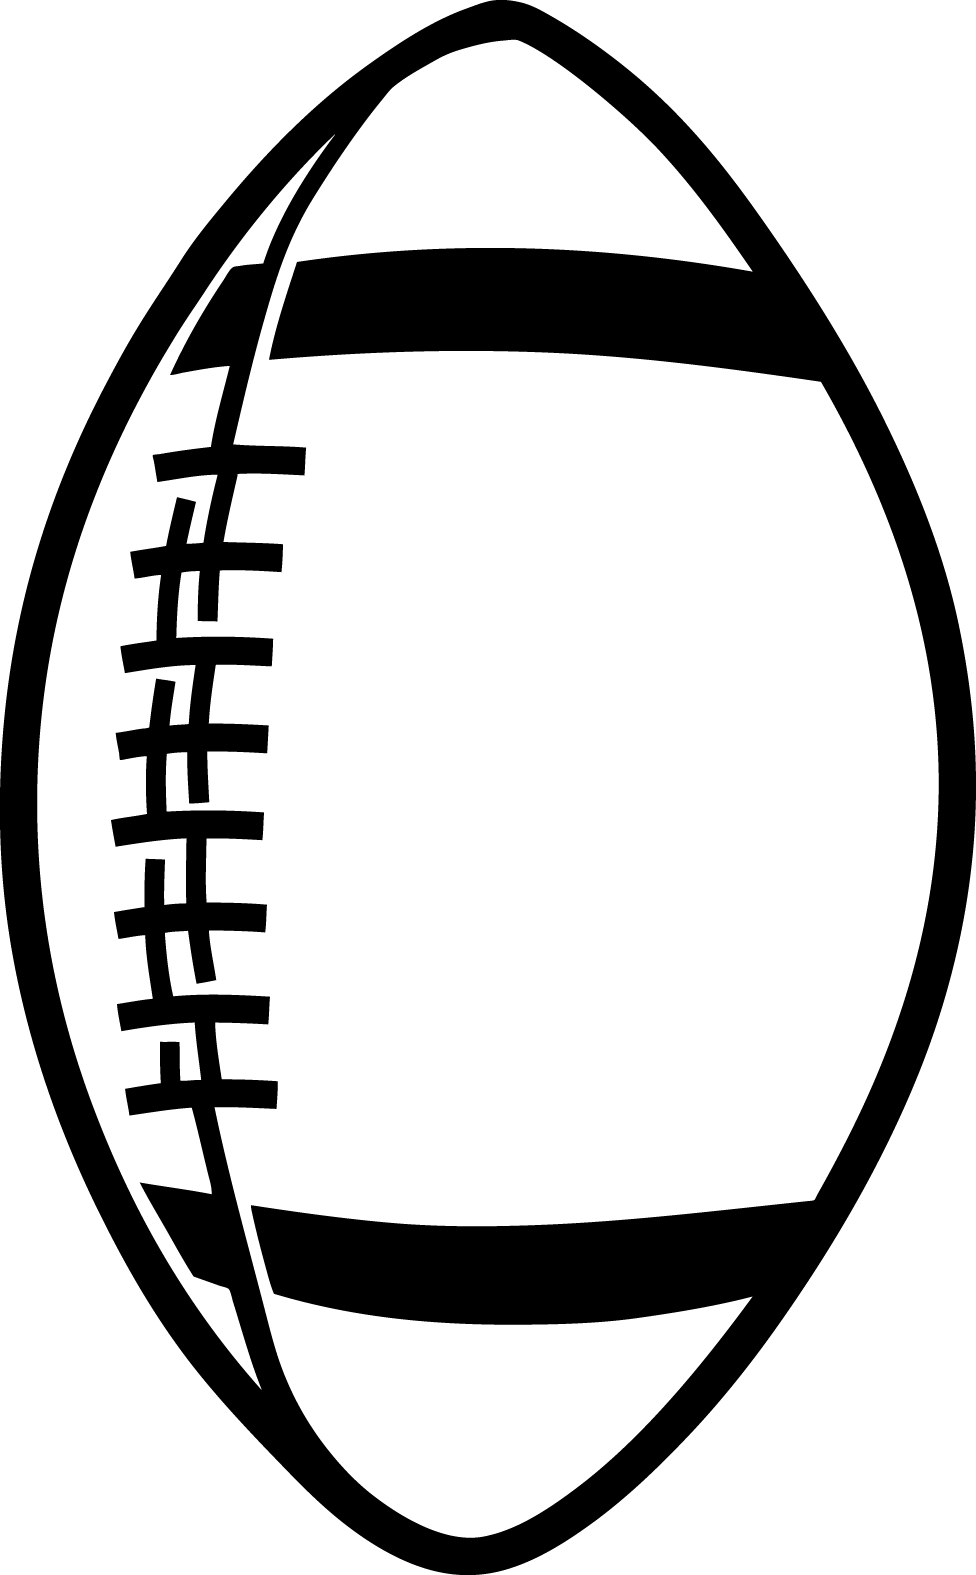 Football outline ball clipart image free stock Free Football Outline, Download Free Clip Art, Free Clip Art on ... image free stock